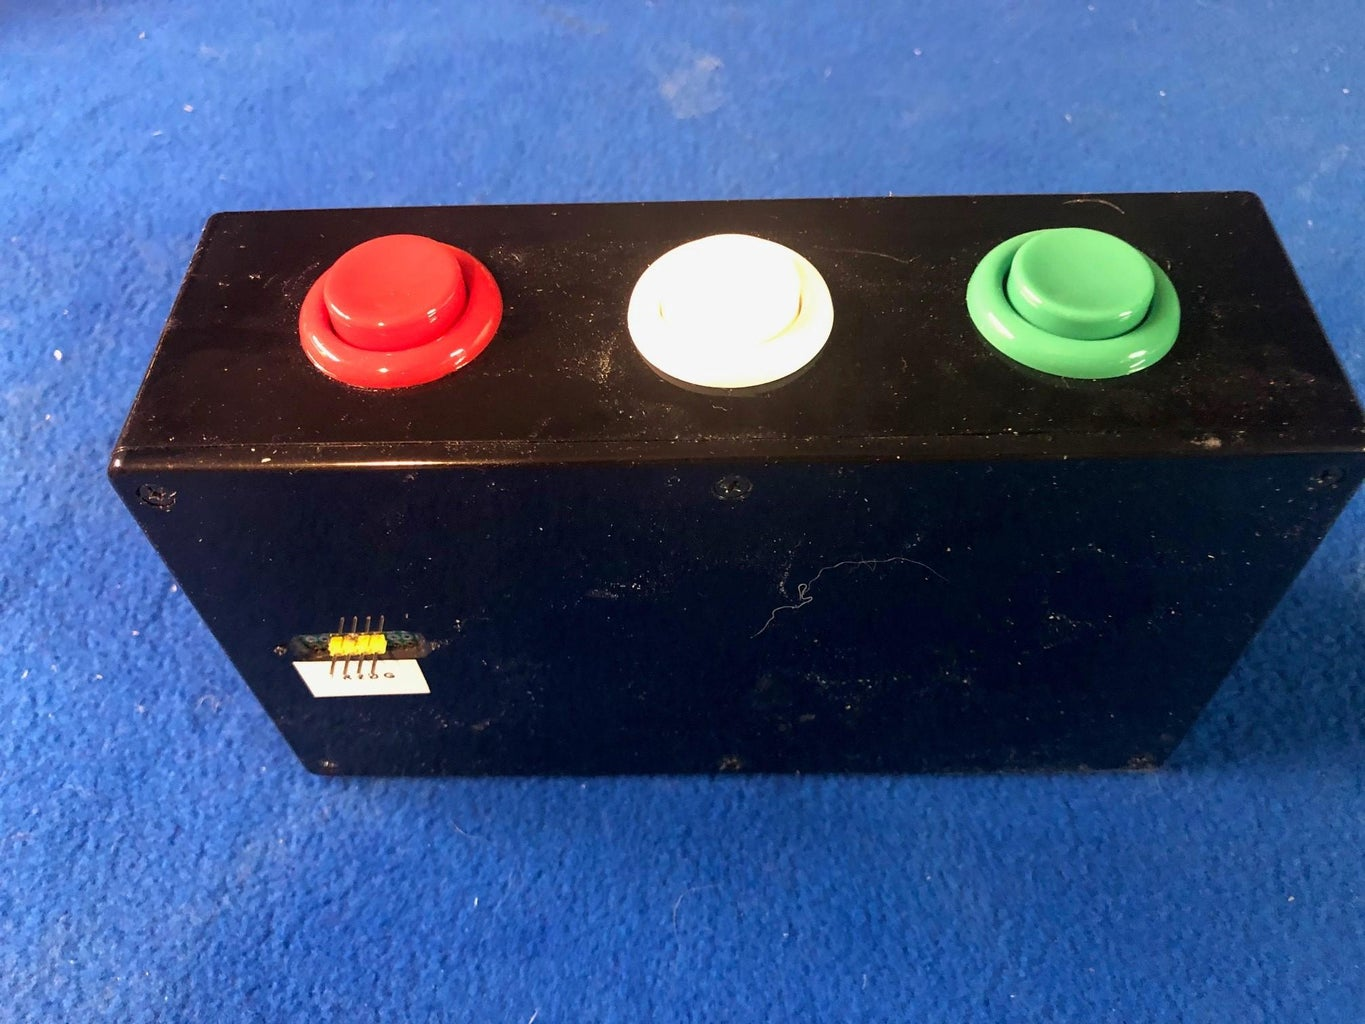 Game Input Buttons (Switches) and Case